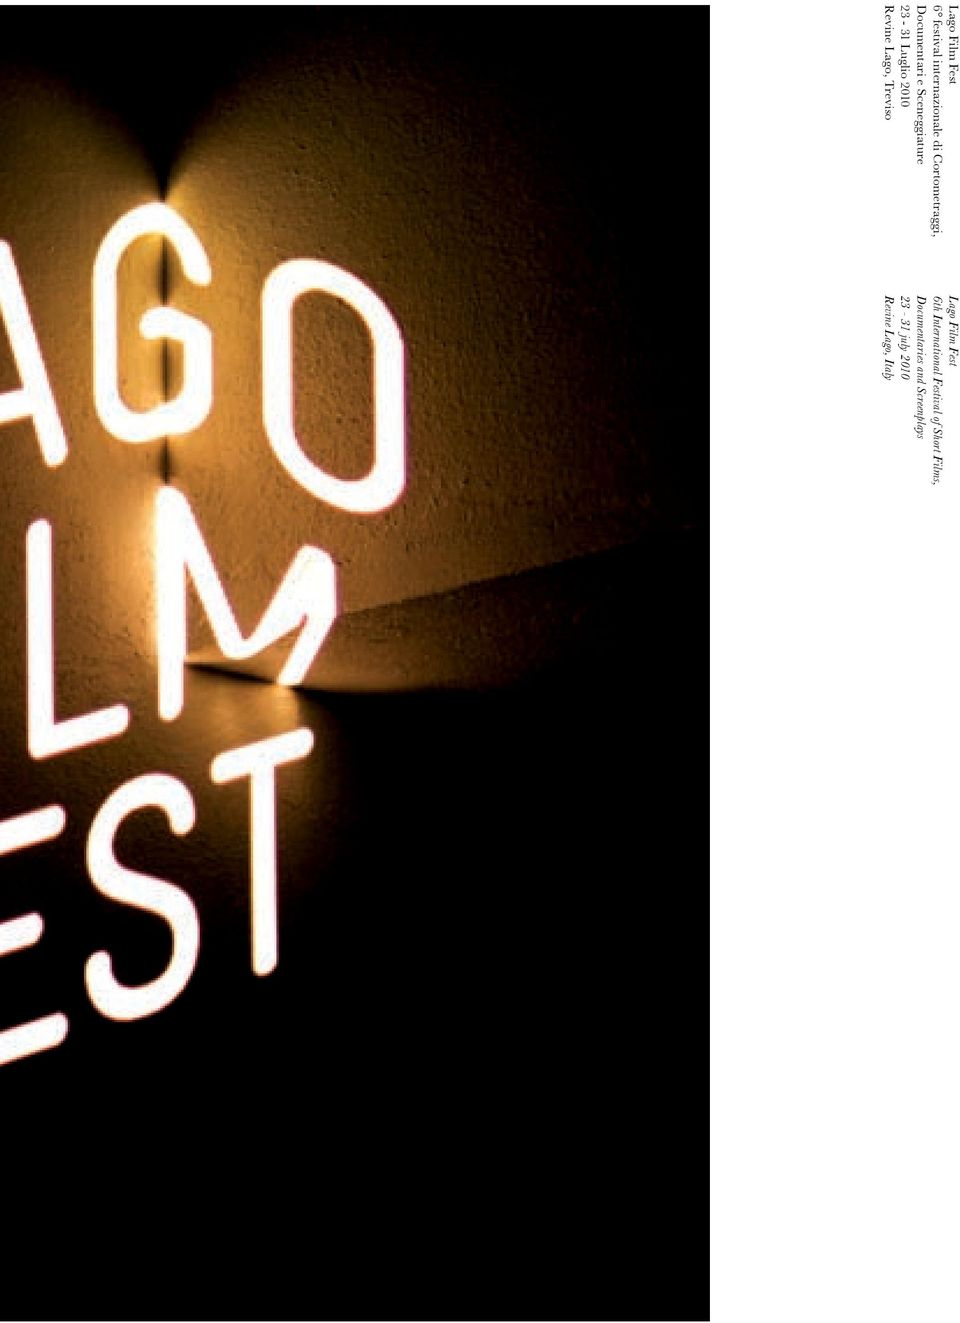 Treviso Lago Film Fest 6th International Festival of Short